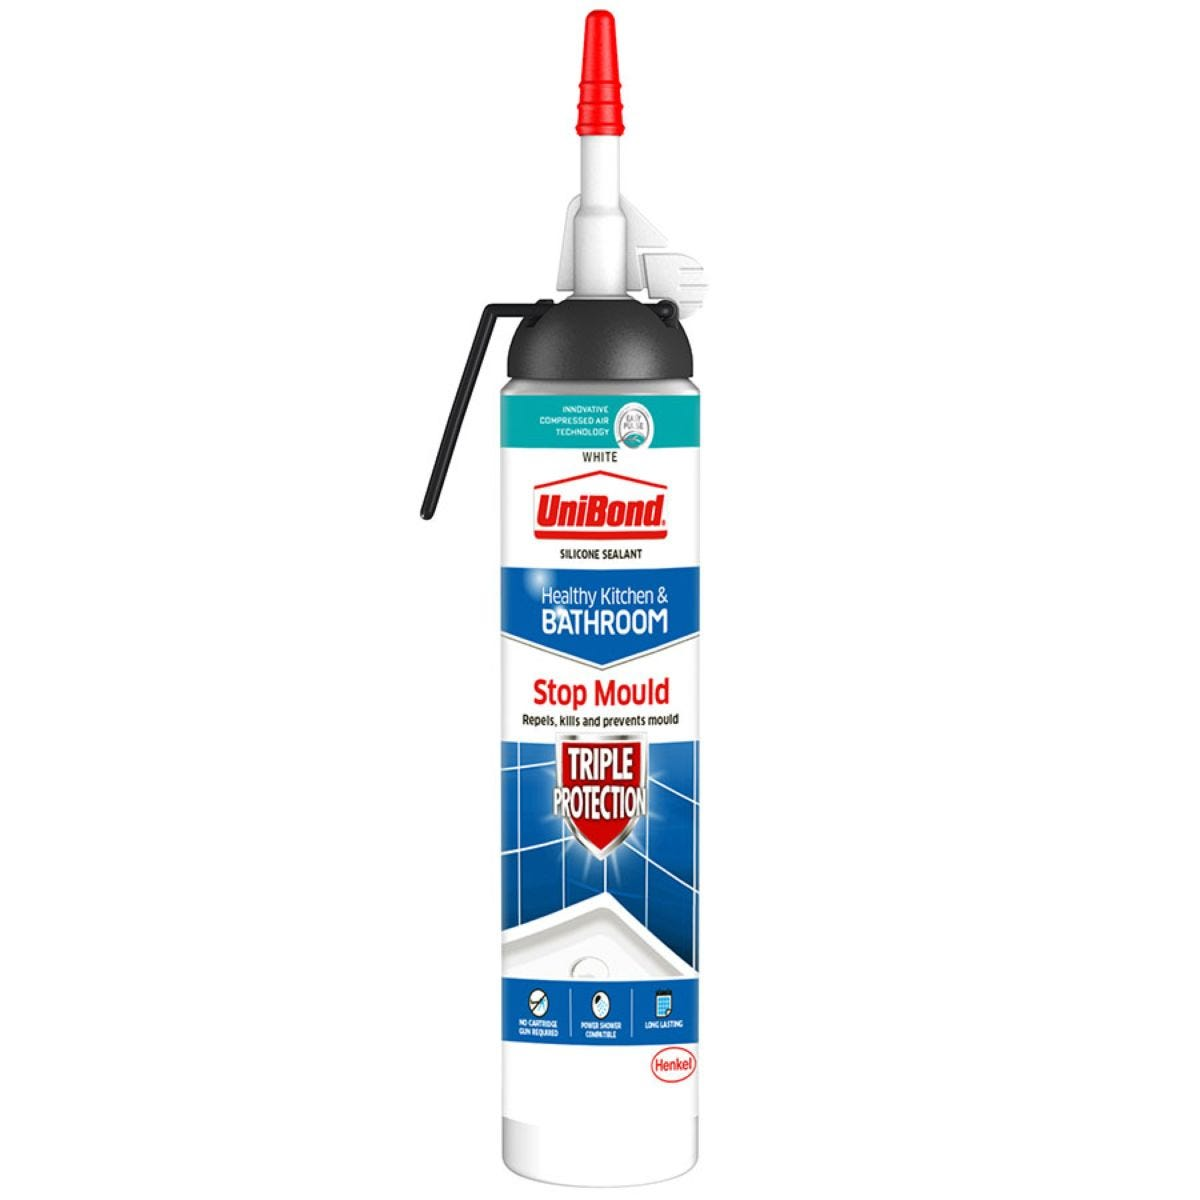 UniBond Kitchen and Bathroom Stop Mould Triple Protect Sealant - White